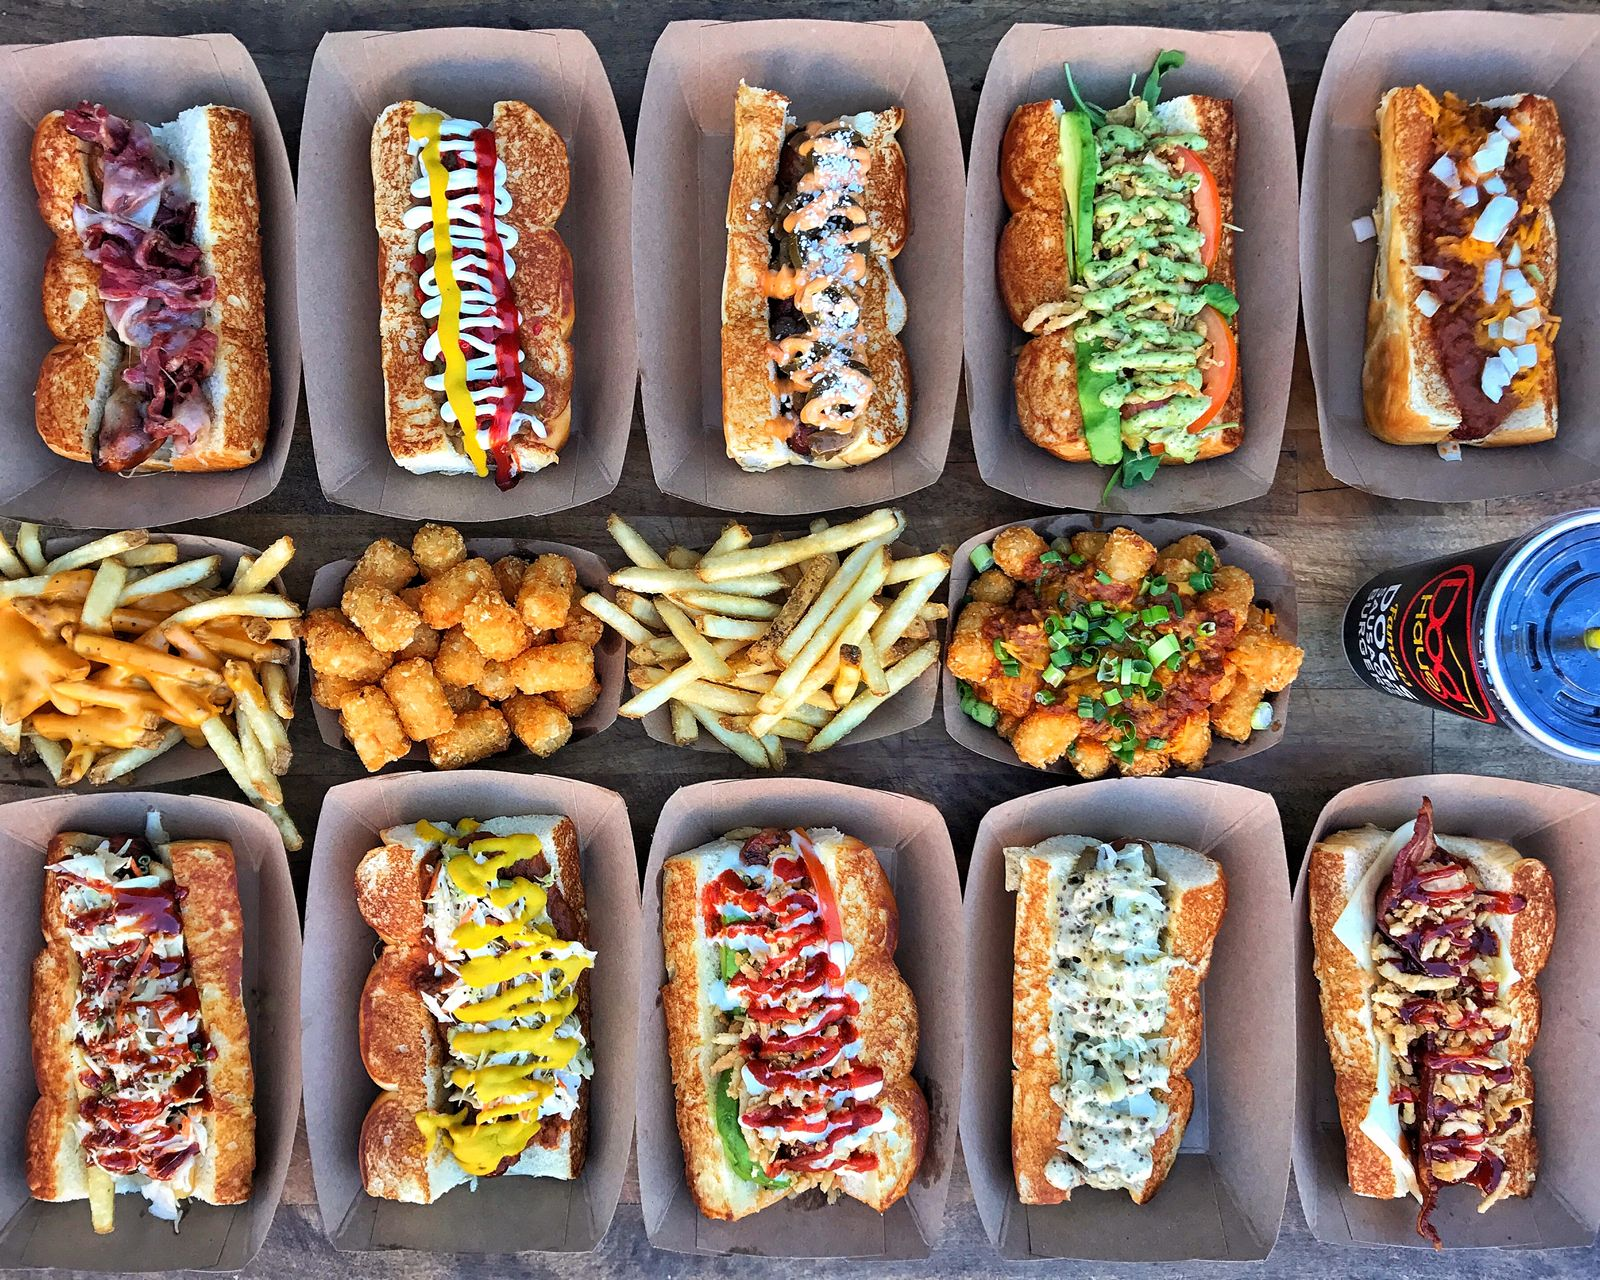 Dog Haus Opens New Franchise Location In Denver On Saturday